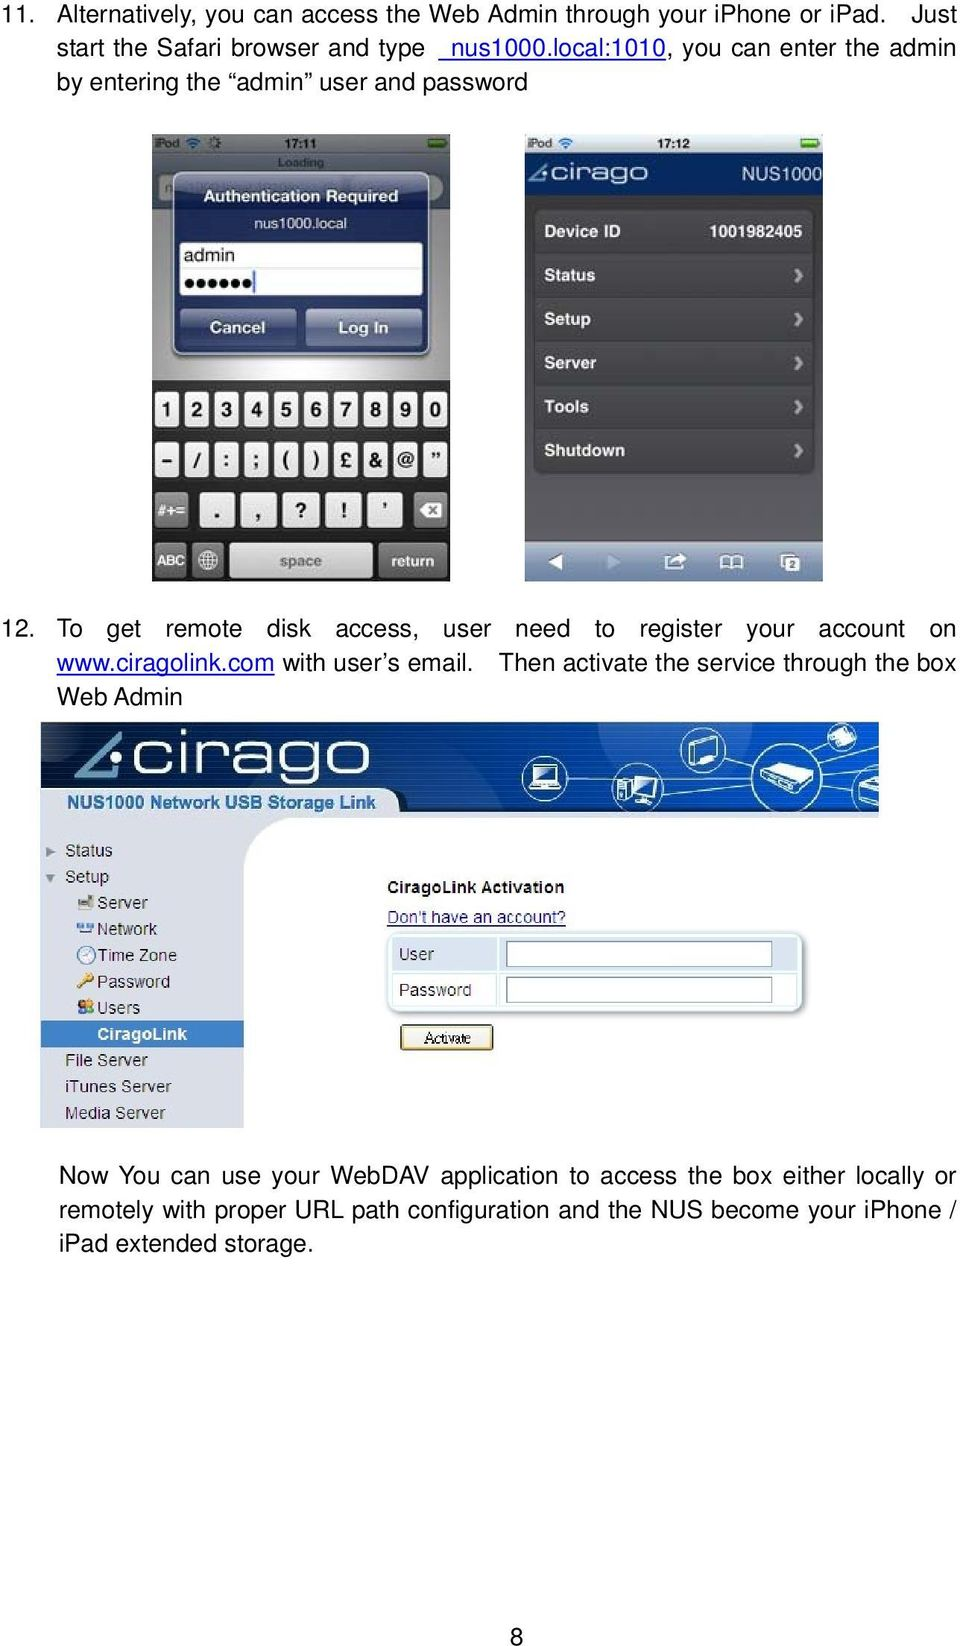 To get remote disk access, user need to register your account on www.ciragolink.com with user s email.